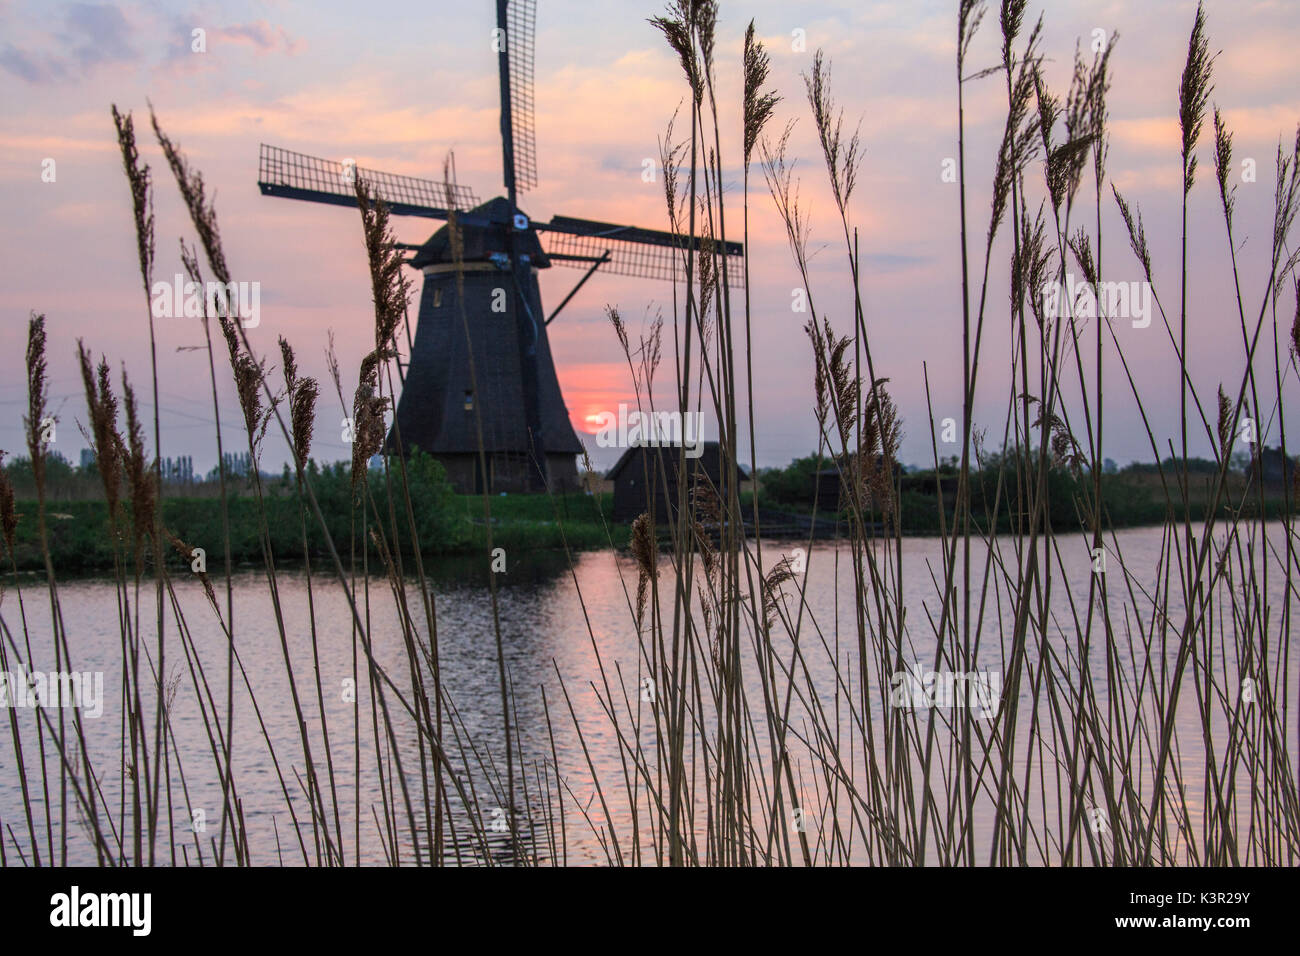 Corn ears frame the windmill reflected in the canal at dawn Kinderdijk Rotterdam South Holland Netherlands Europe - Stock Image